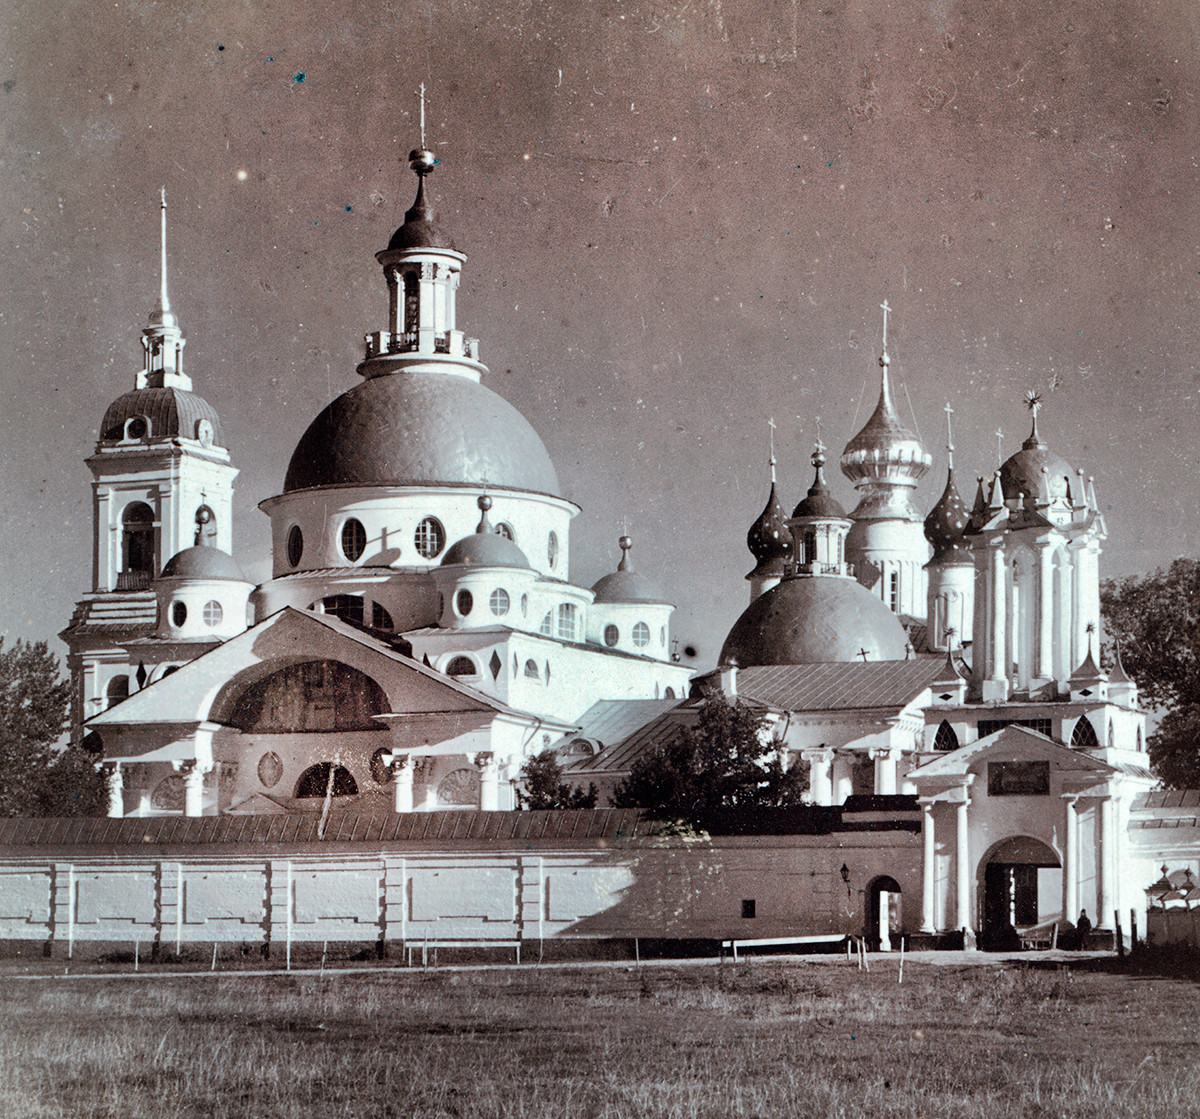 Savior-St. Yakov-St. Dimitry Monastery. Northwest view. From left: Bell tower, Church of St. Dimitry of Rostov, Conception of St. Anne Cathedral, North Gate. Summer 1911